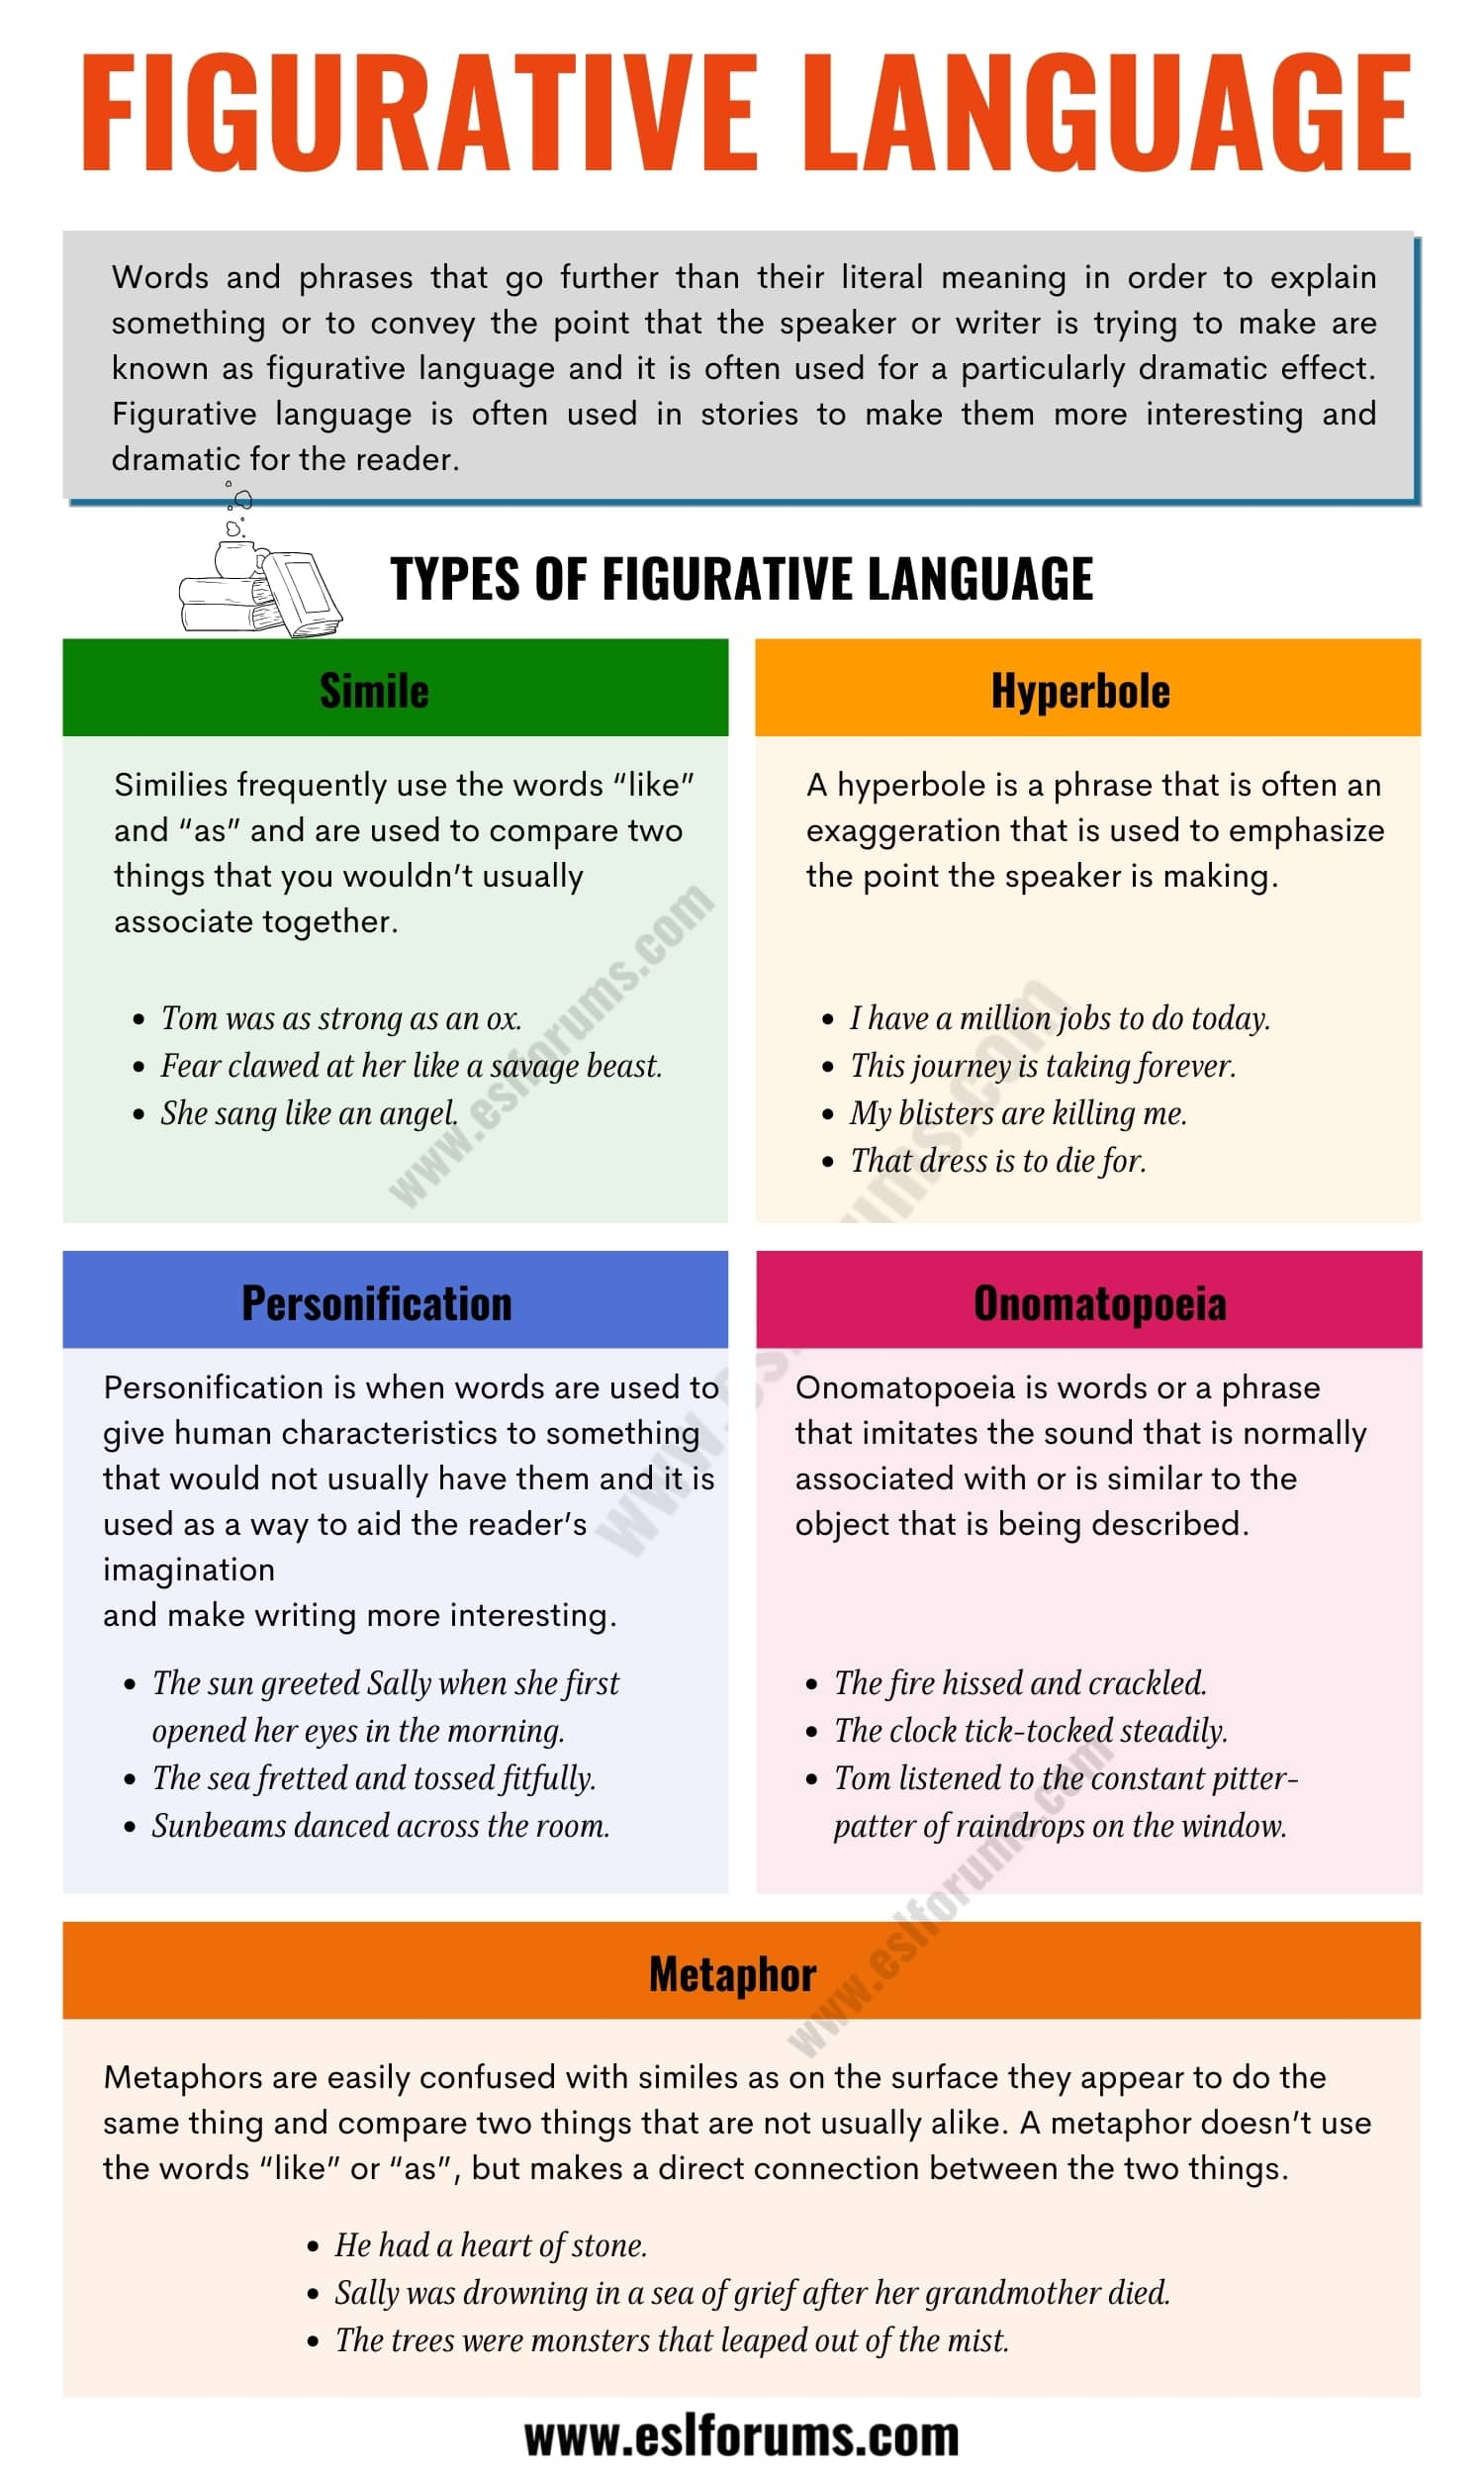 Figurative Language | Definition, Types and Interesting Examples